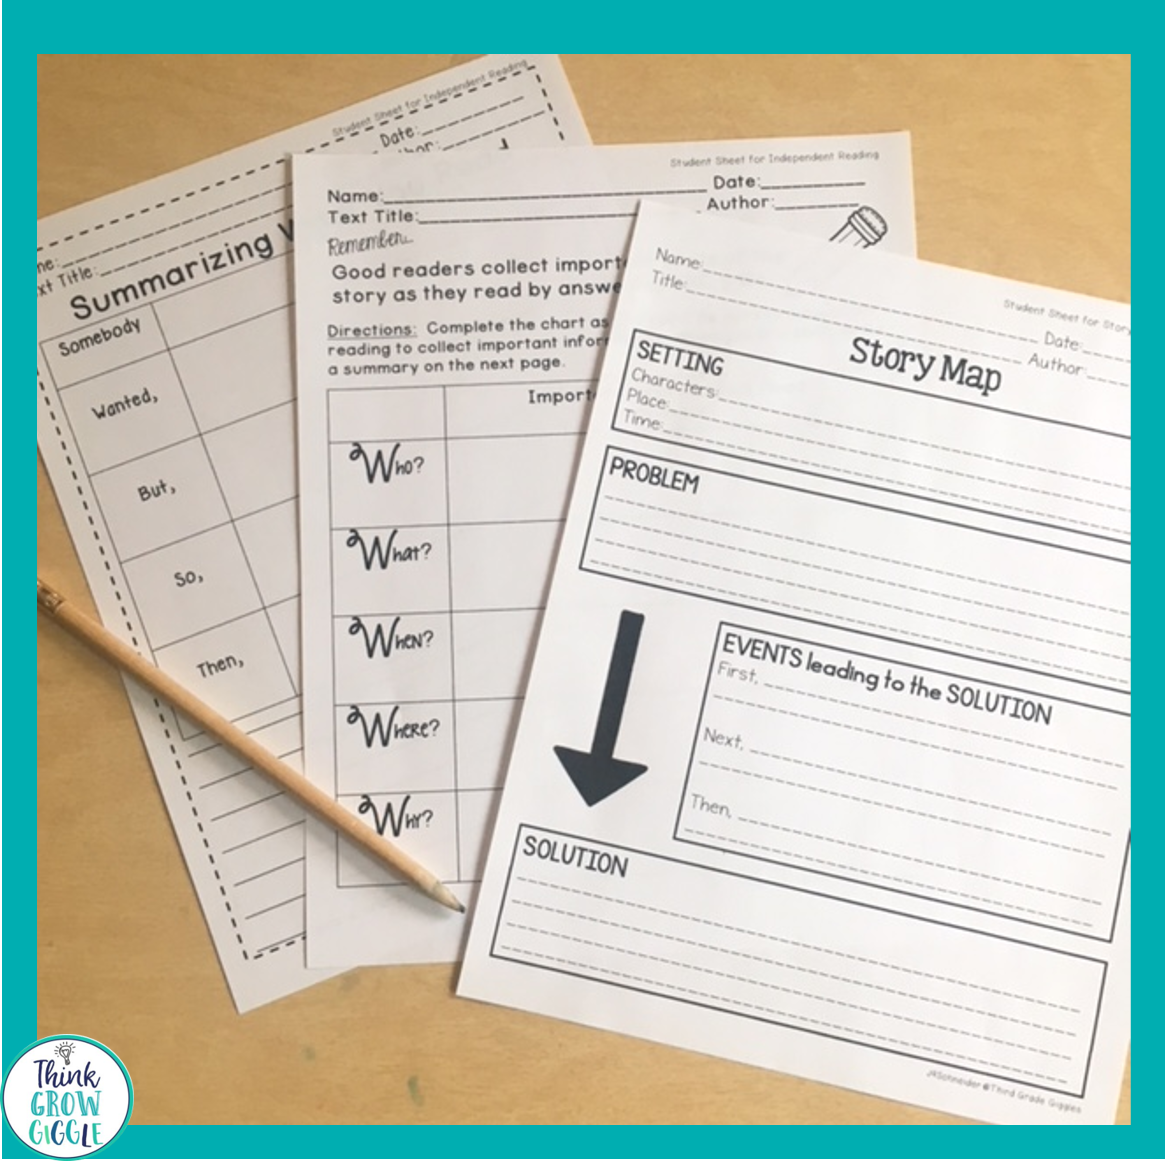 medium resolution of 4 Ways to Help Students Successfully Summarize - Think Grow Giggle